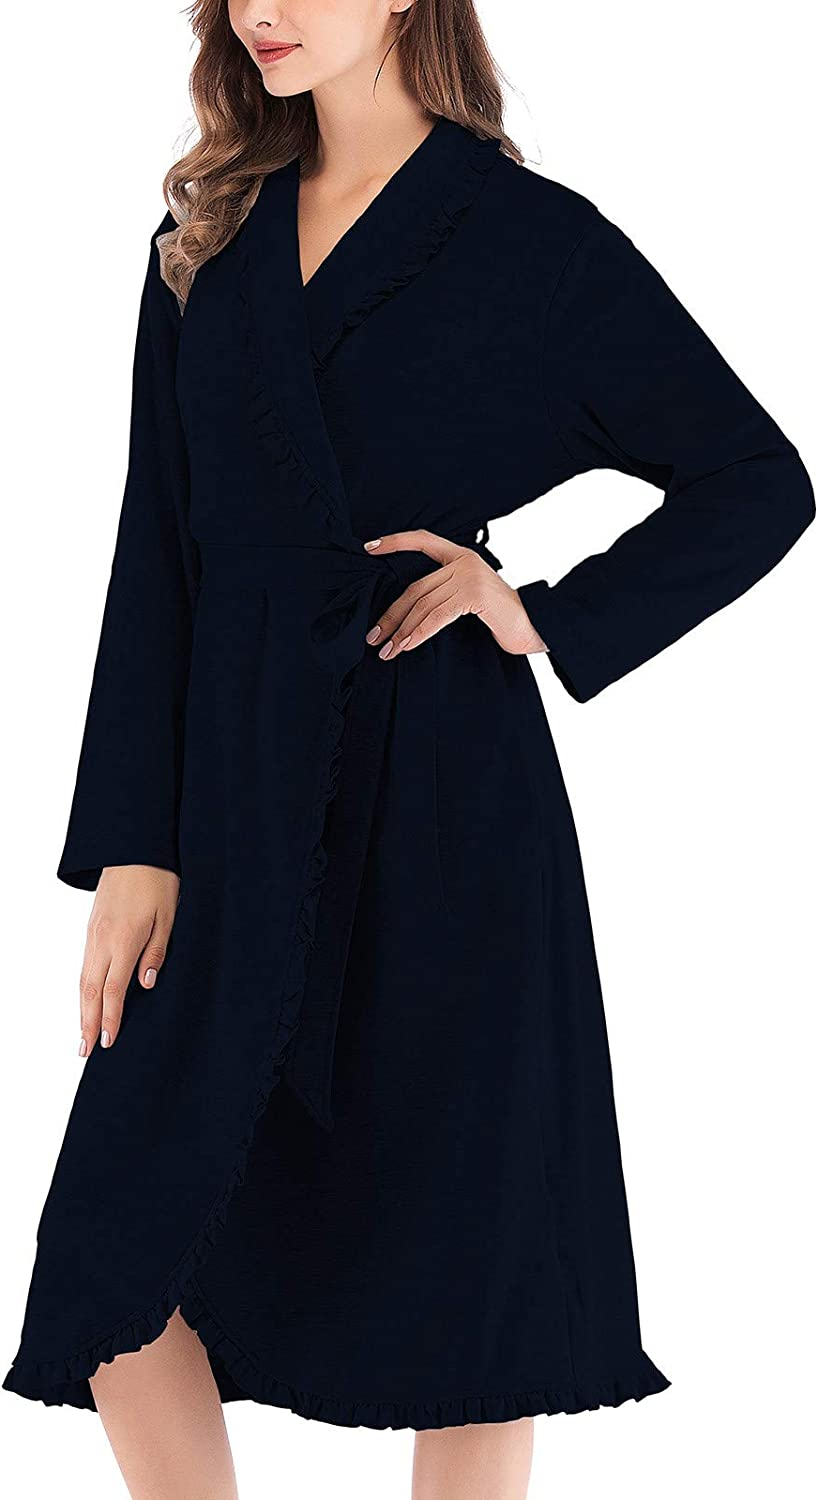 Women's Casual Winter mart Leng 67% OFF of fixed price Bathrobe Clothes Lon Color Home Solid